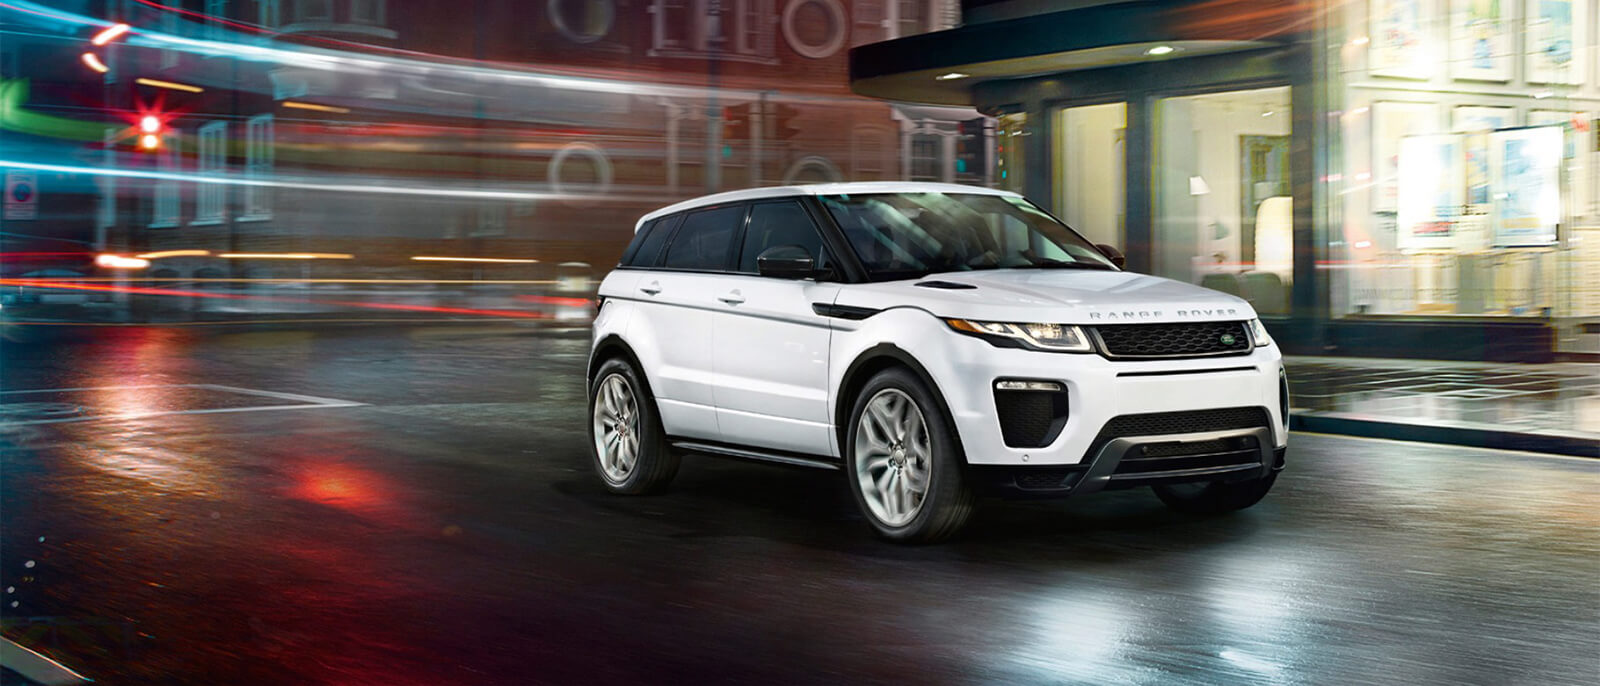 Inside the Land Rover Range Rover Evoque | Land Rover Darien